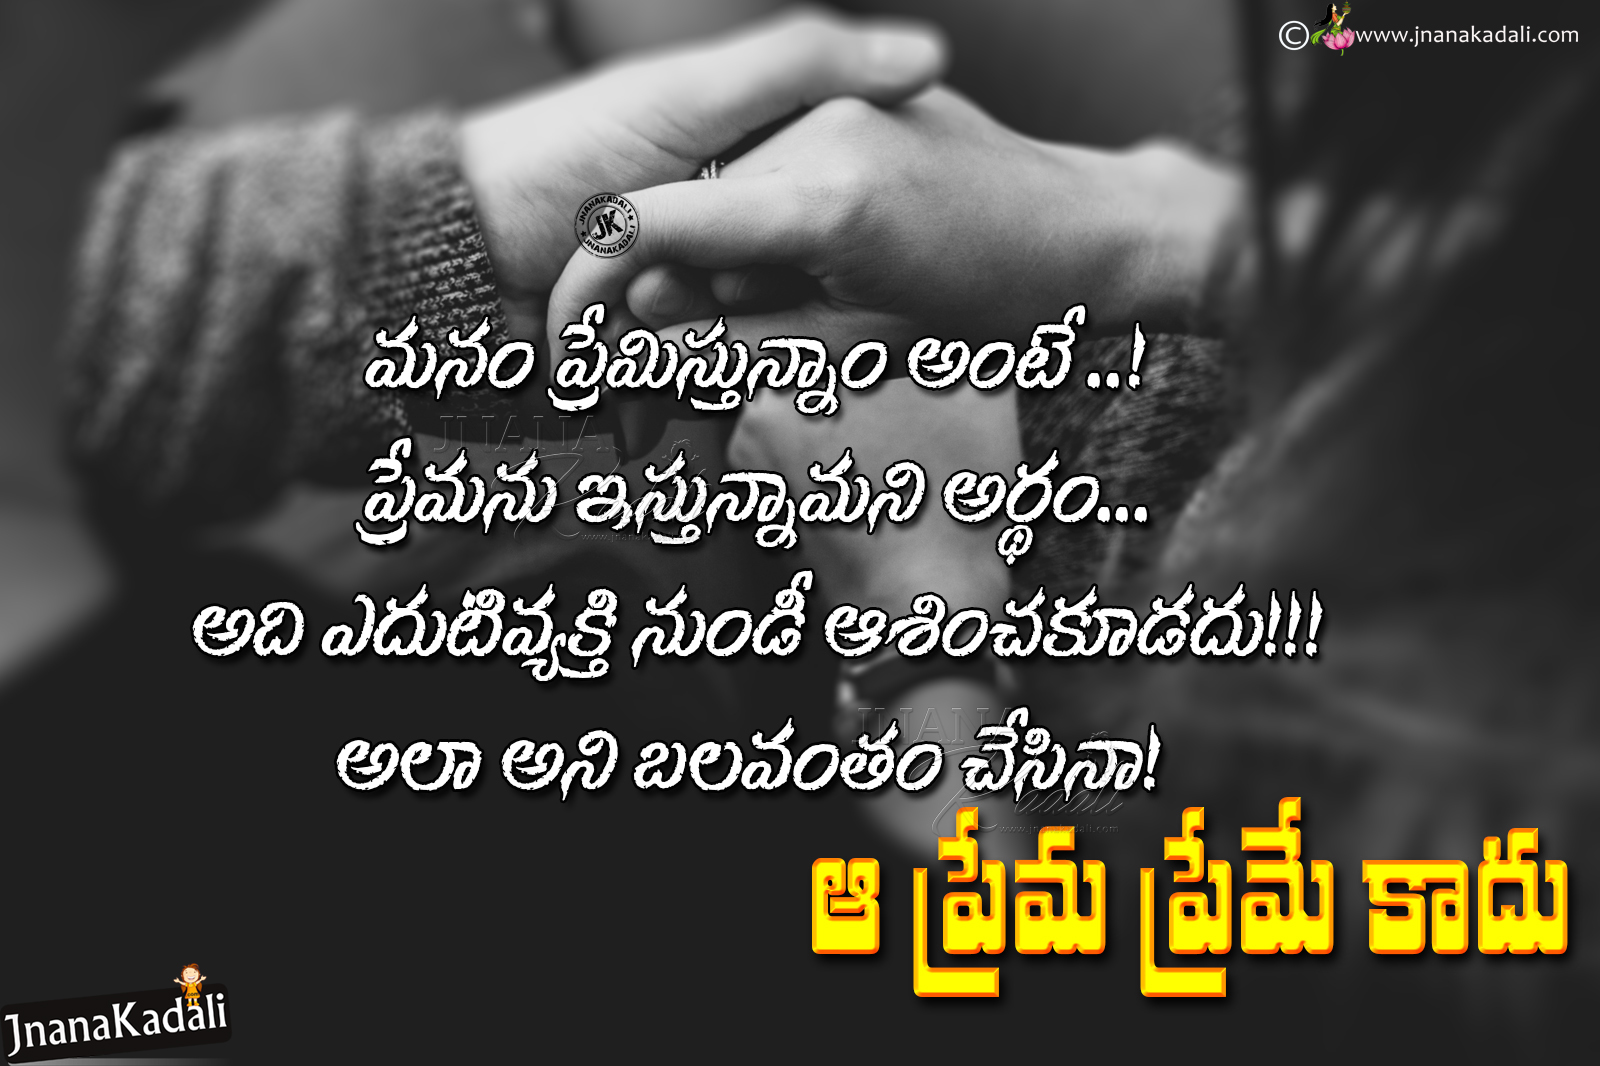 Best Love Meaning Quotes Images In Telugu Heart Touching Love Quotes In Telugu Jnana Kadali Com Telugu Quotes English Quotes Hindi Quotes Tamil Quotes Dharmasandehalu